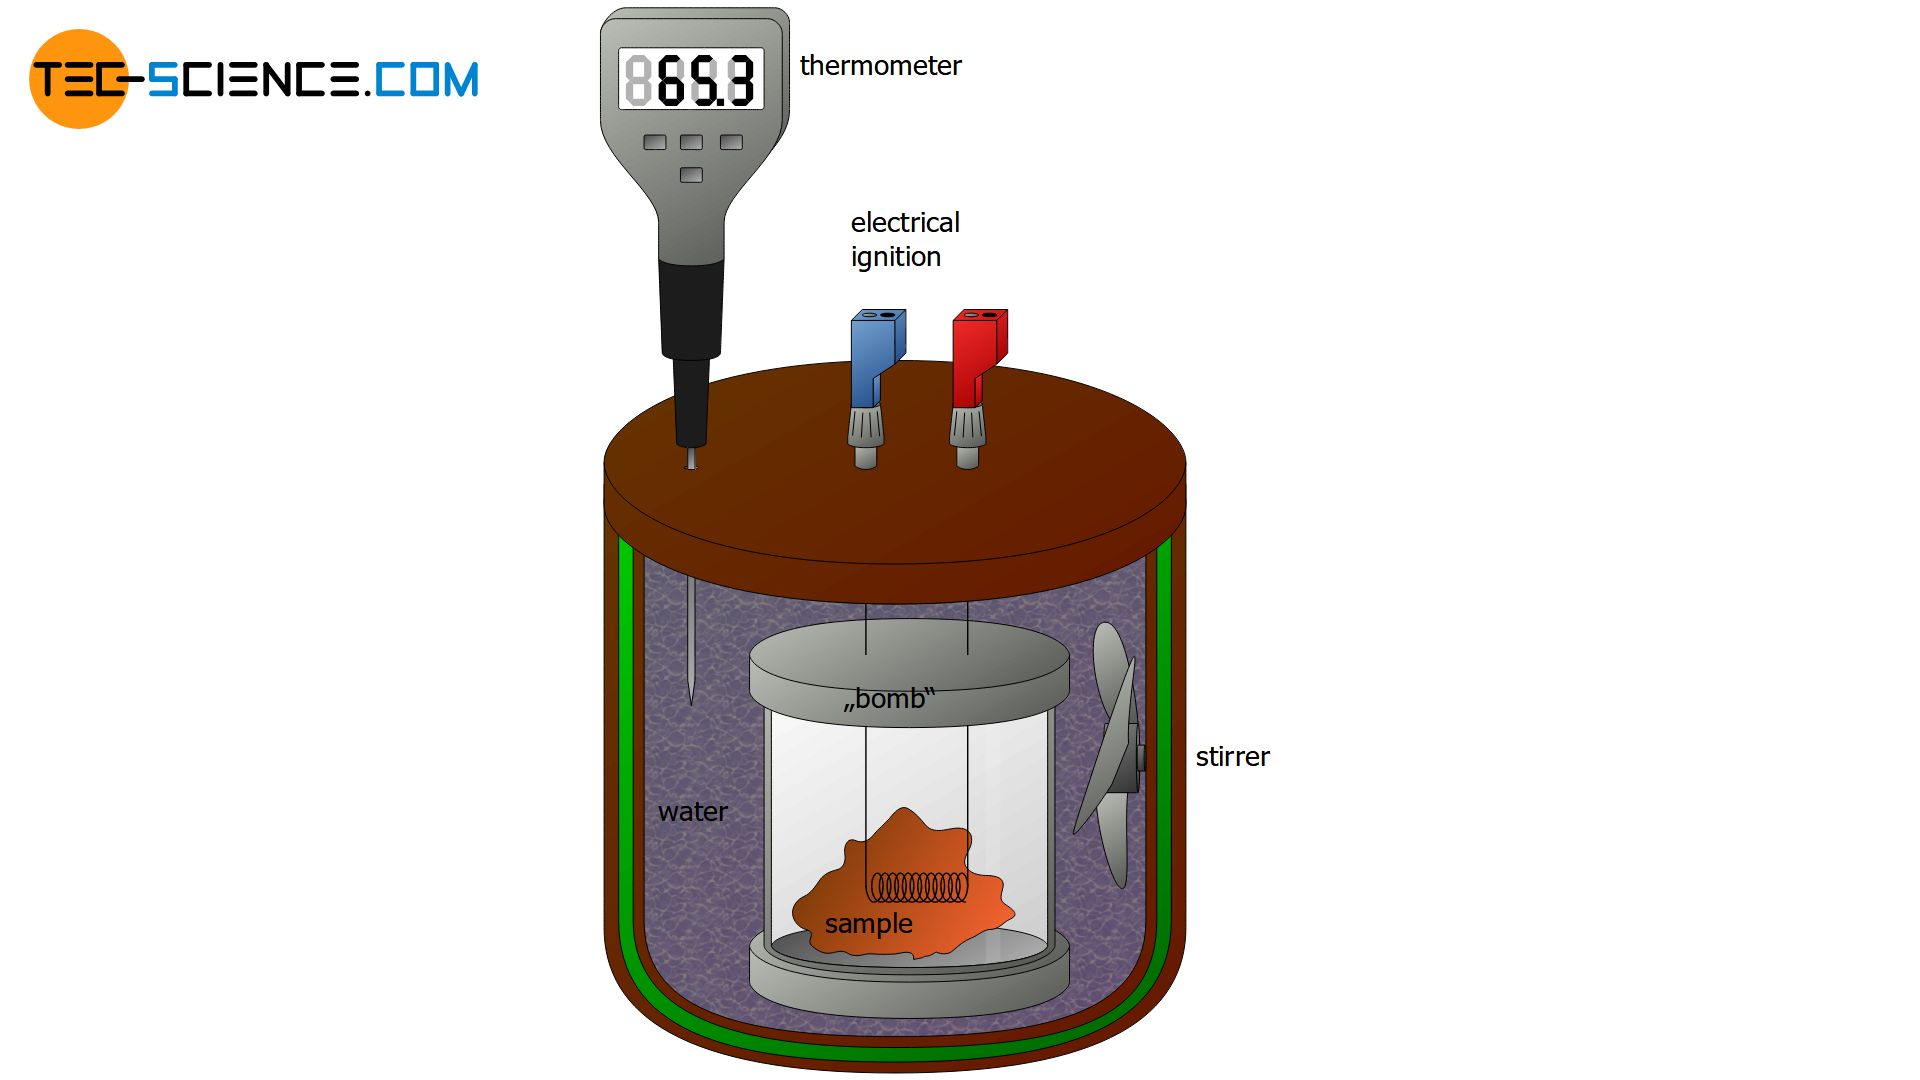 Design of a bomb calorimeter (how does work)